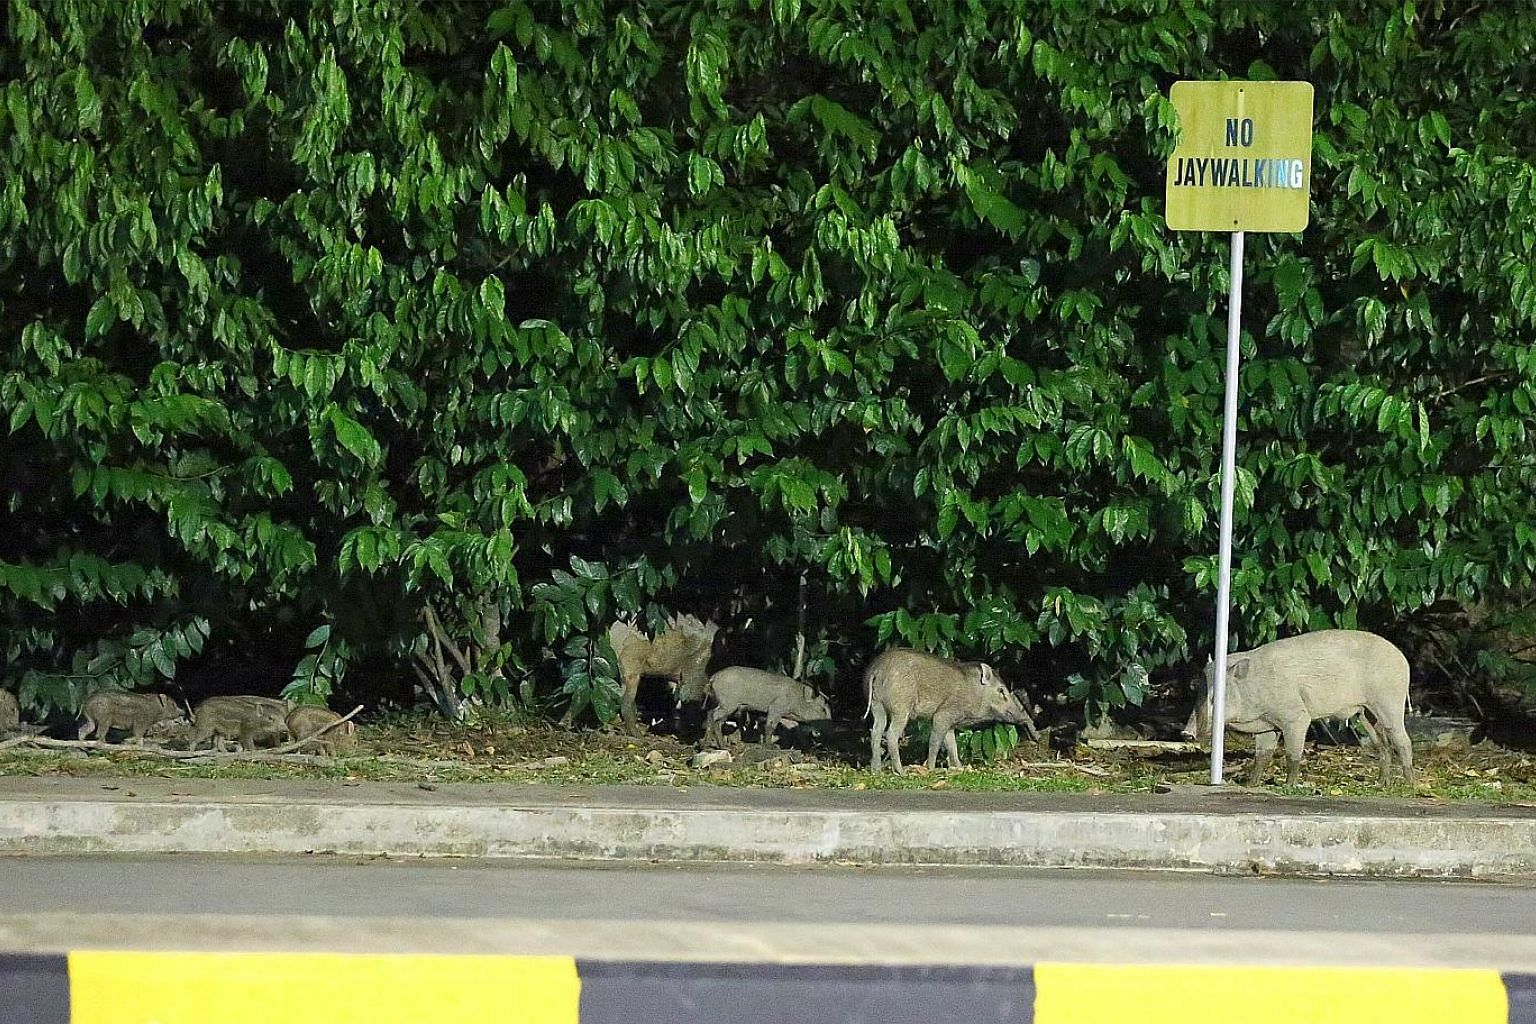 Wild boars were spotted around Tuas bus interchange in June last year. Such encounters between humans and wildlife are rising.